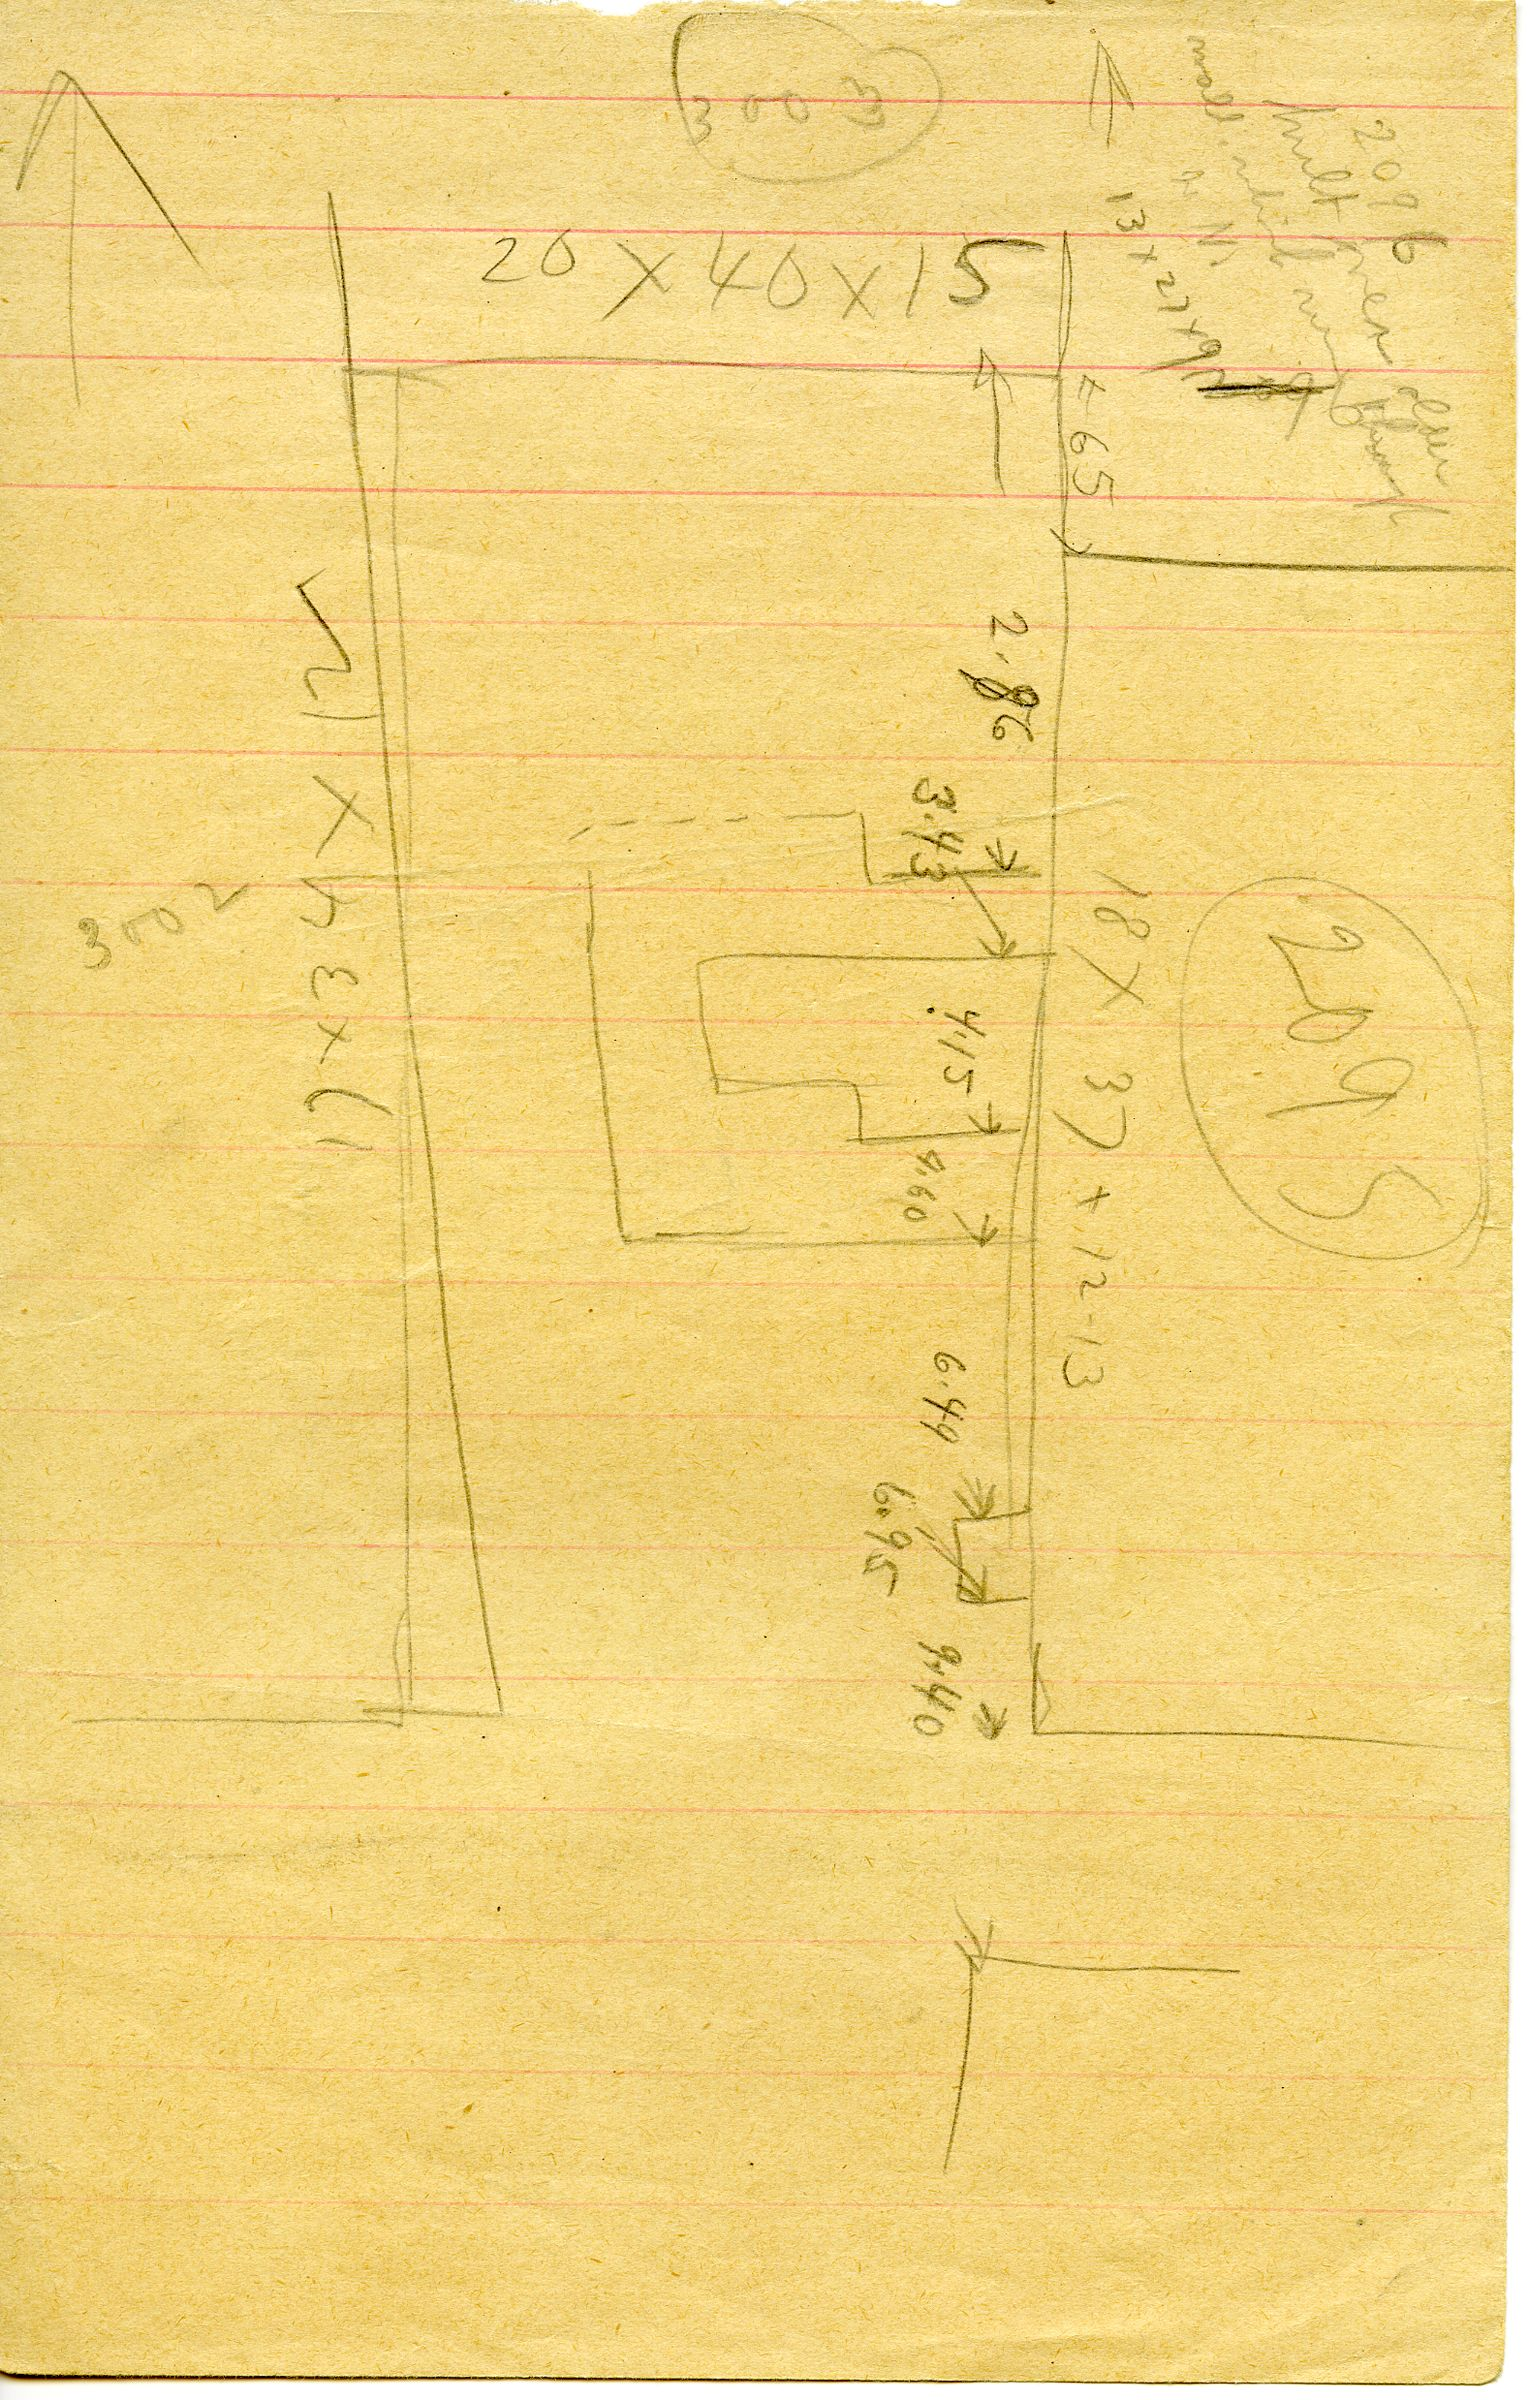 Maps and plans: Sketch plan of G 3002, G 3003, G 3095